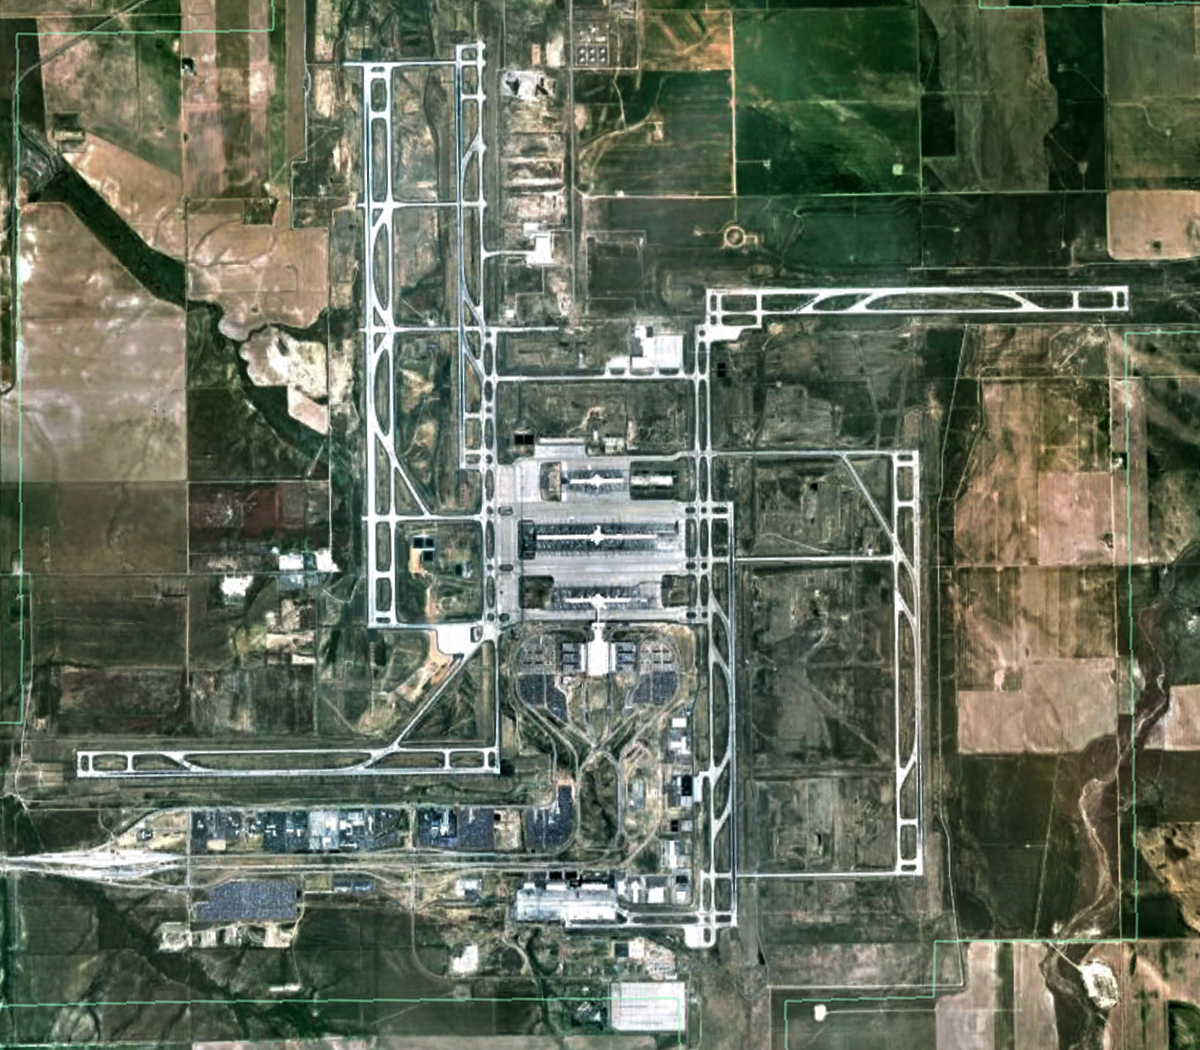 TURBO BLOG: The New World Order Airport In Denver, Colorado